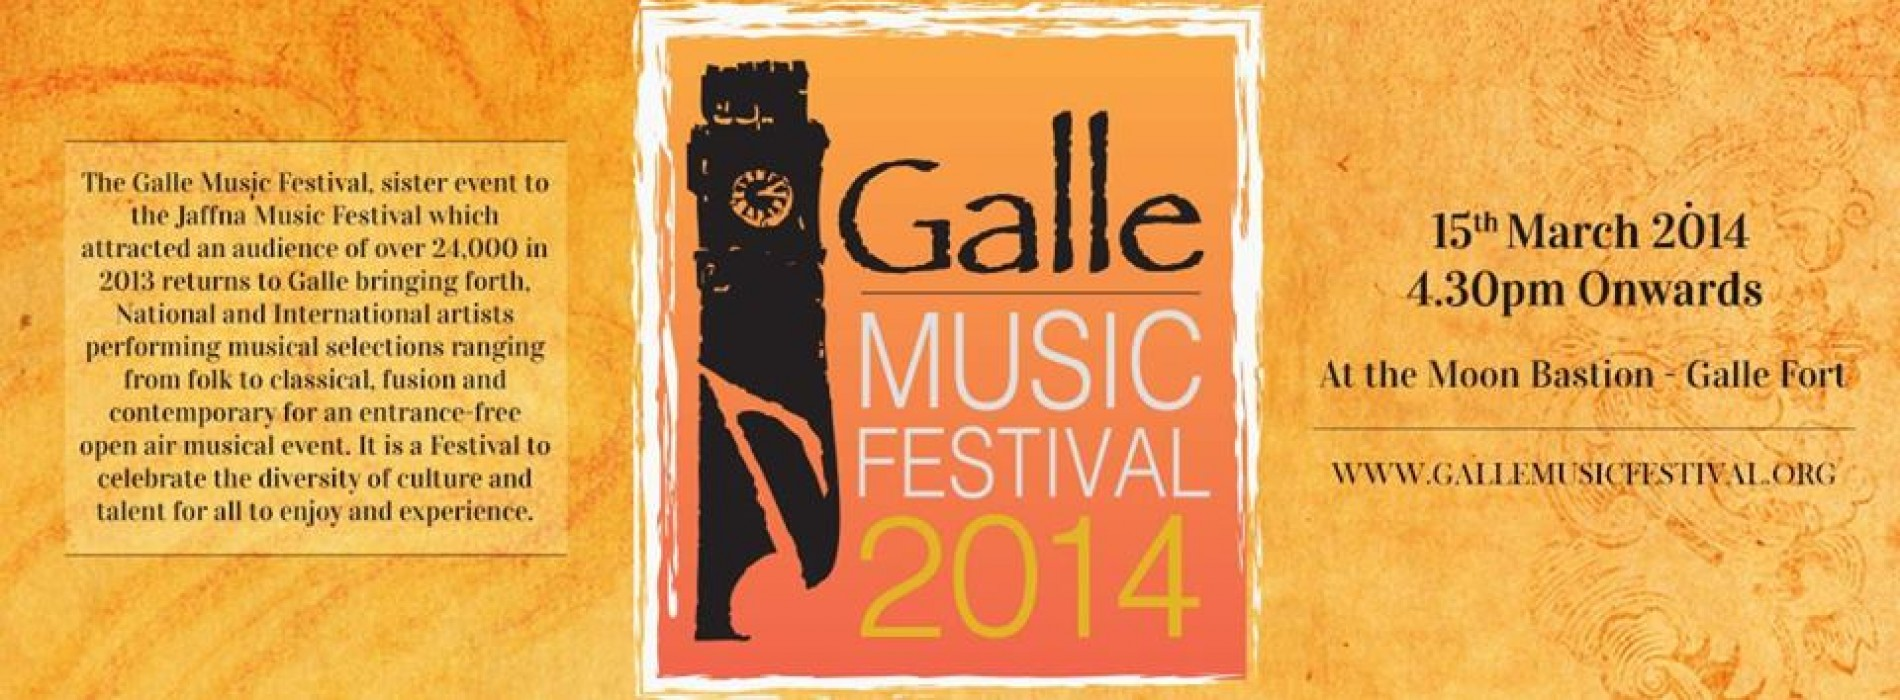 Galle Music Festival 2014: Galle